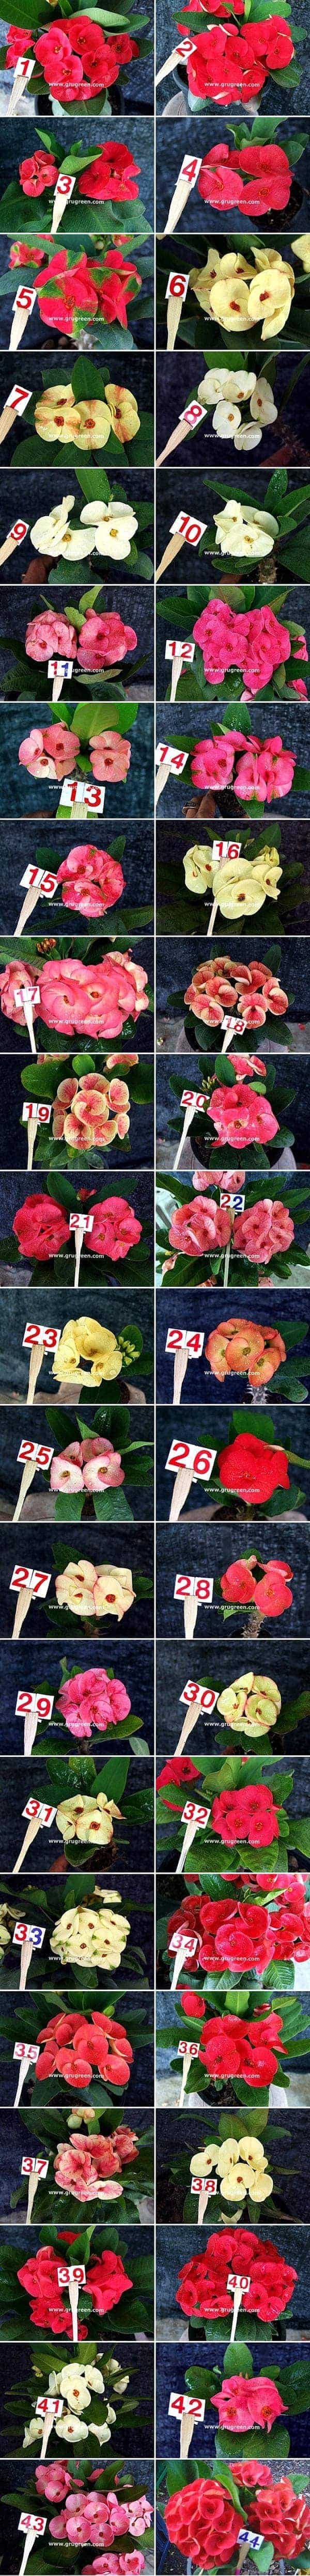 Euphorbia milii for sale catalog